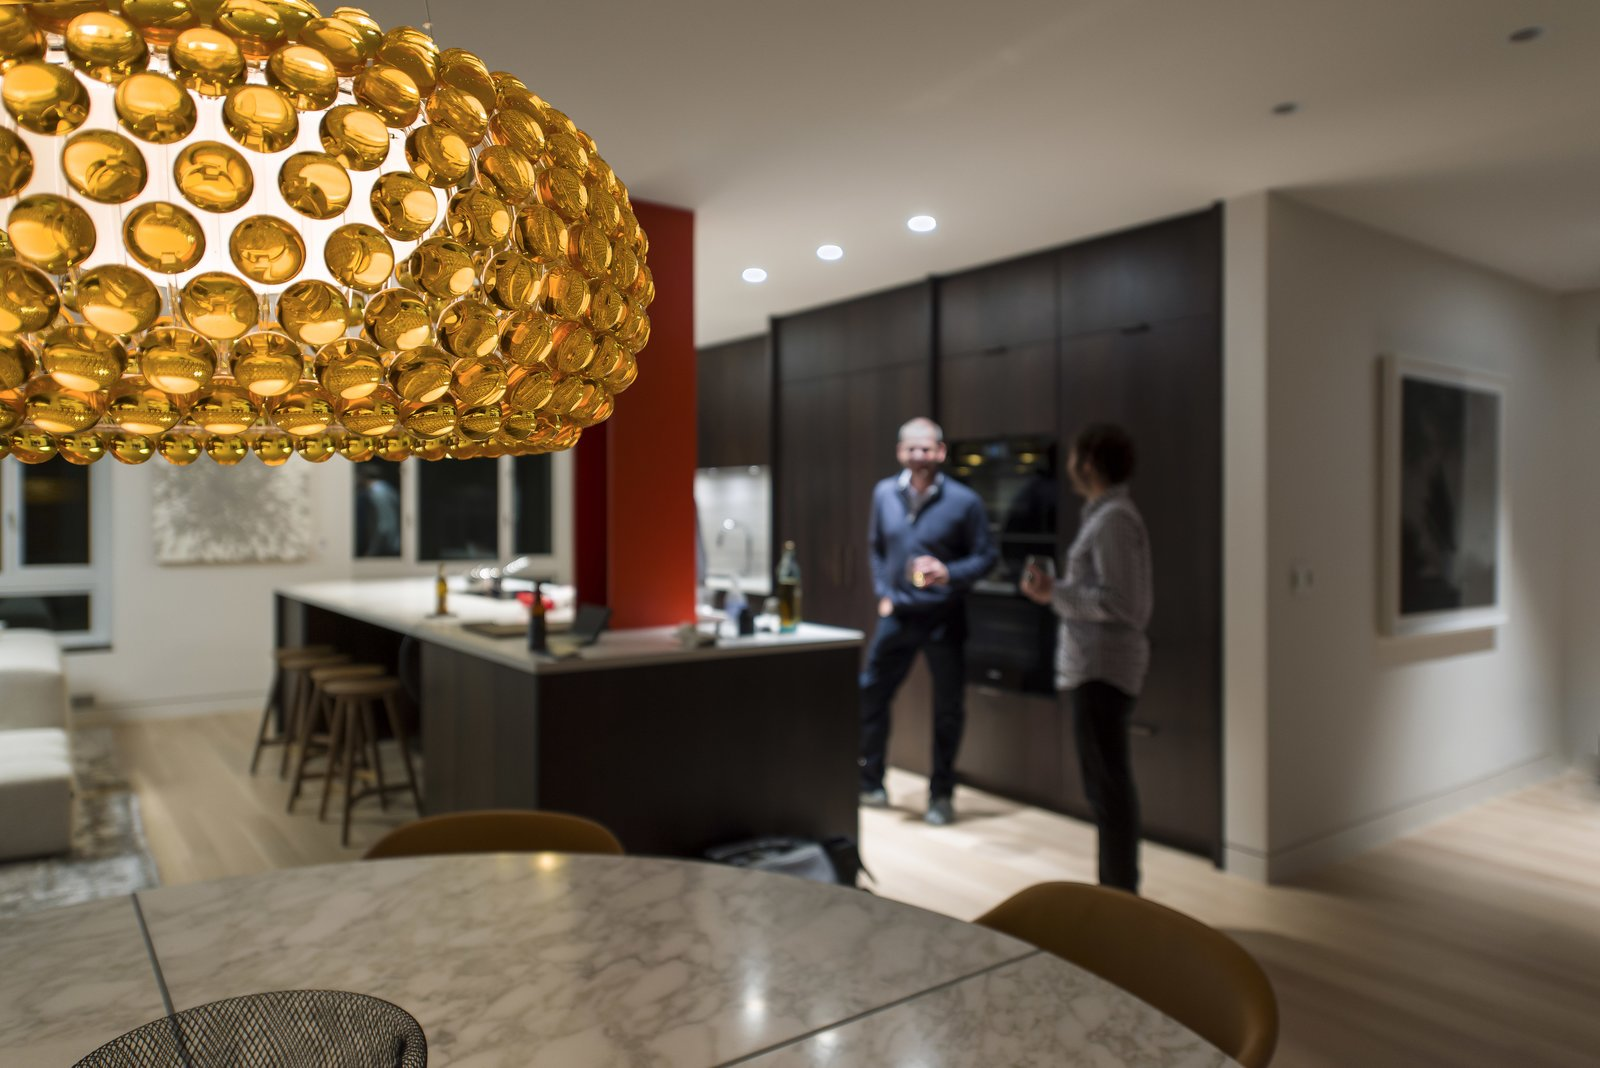 Dining Room - Caboche Pendant  Nob Hill Residence by Imbue Design